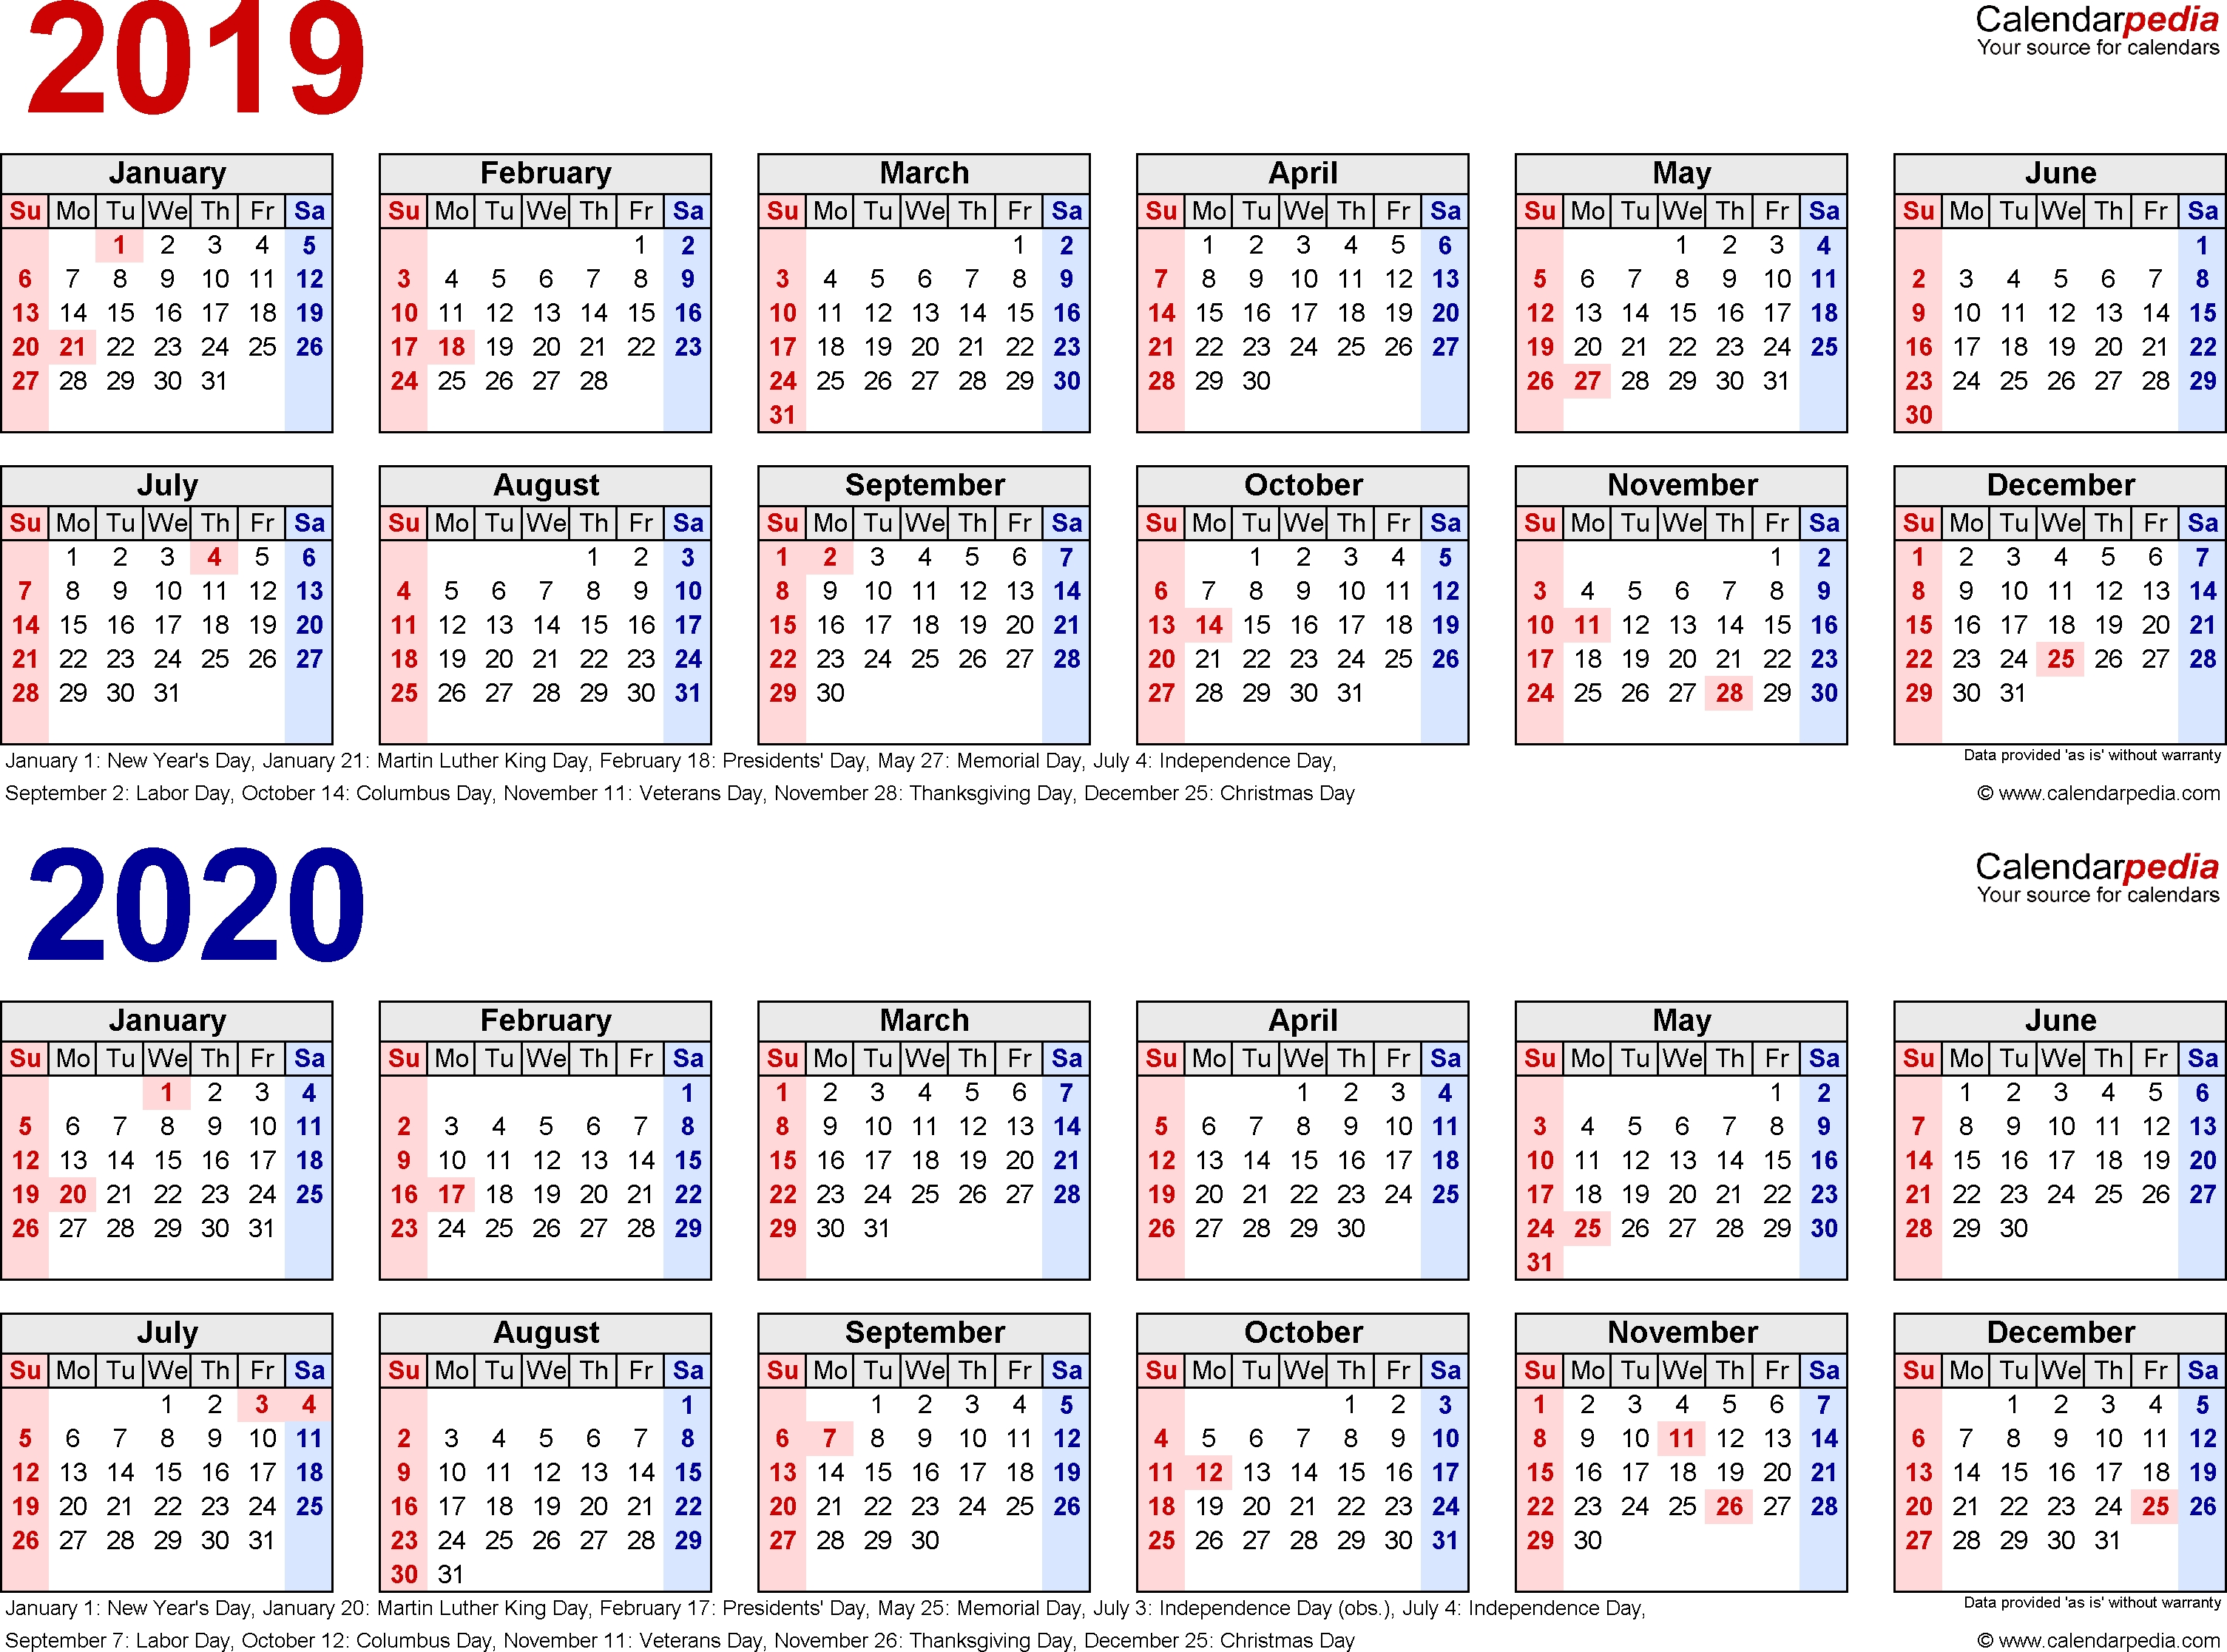 2019-2020 Calendar - Free Printable Two-Year Pdf Calendars pertaining to Calendar July 2019 - June 2020